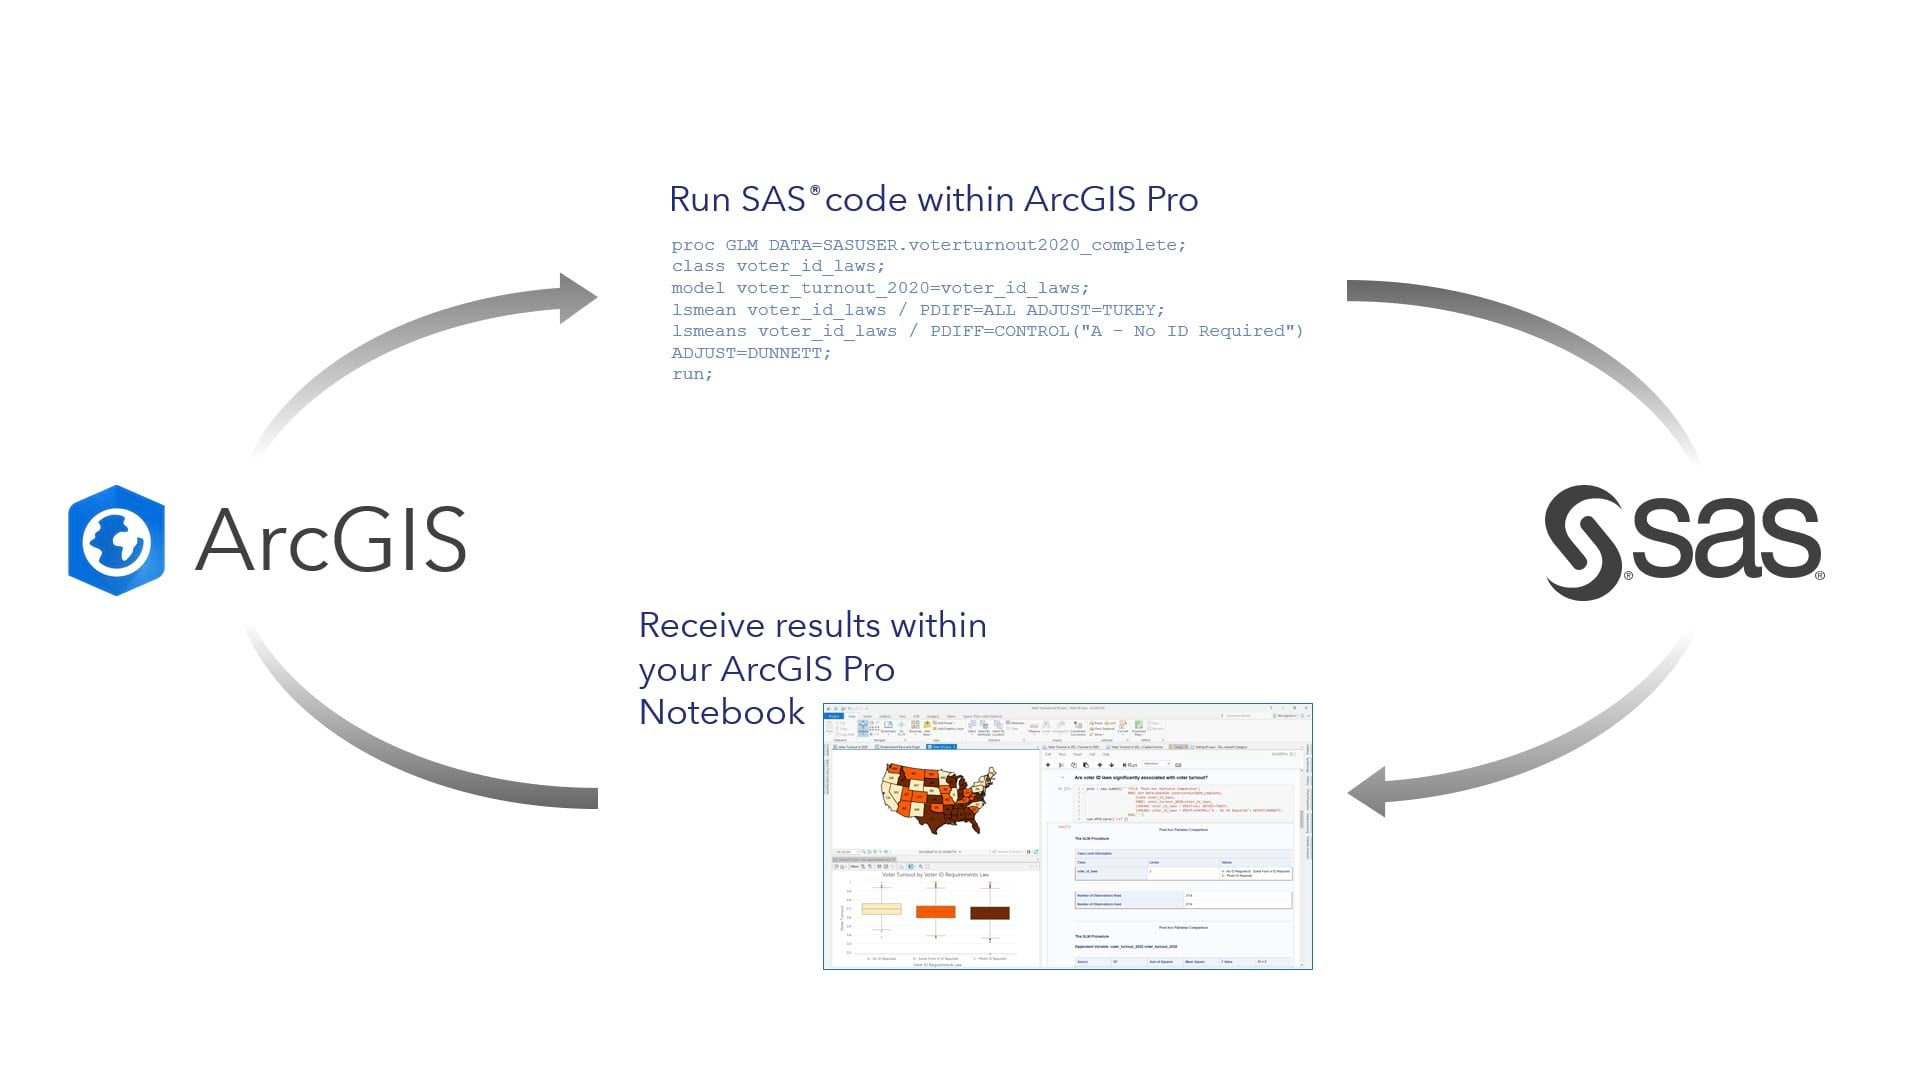 Diagram showing integration between ArcGIS and SAS